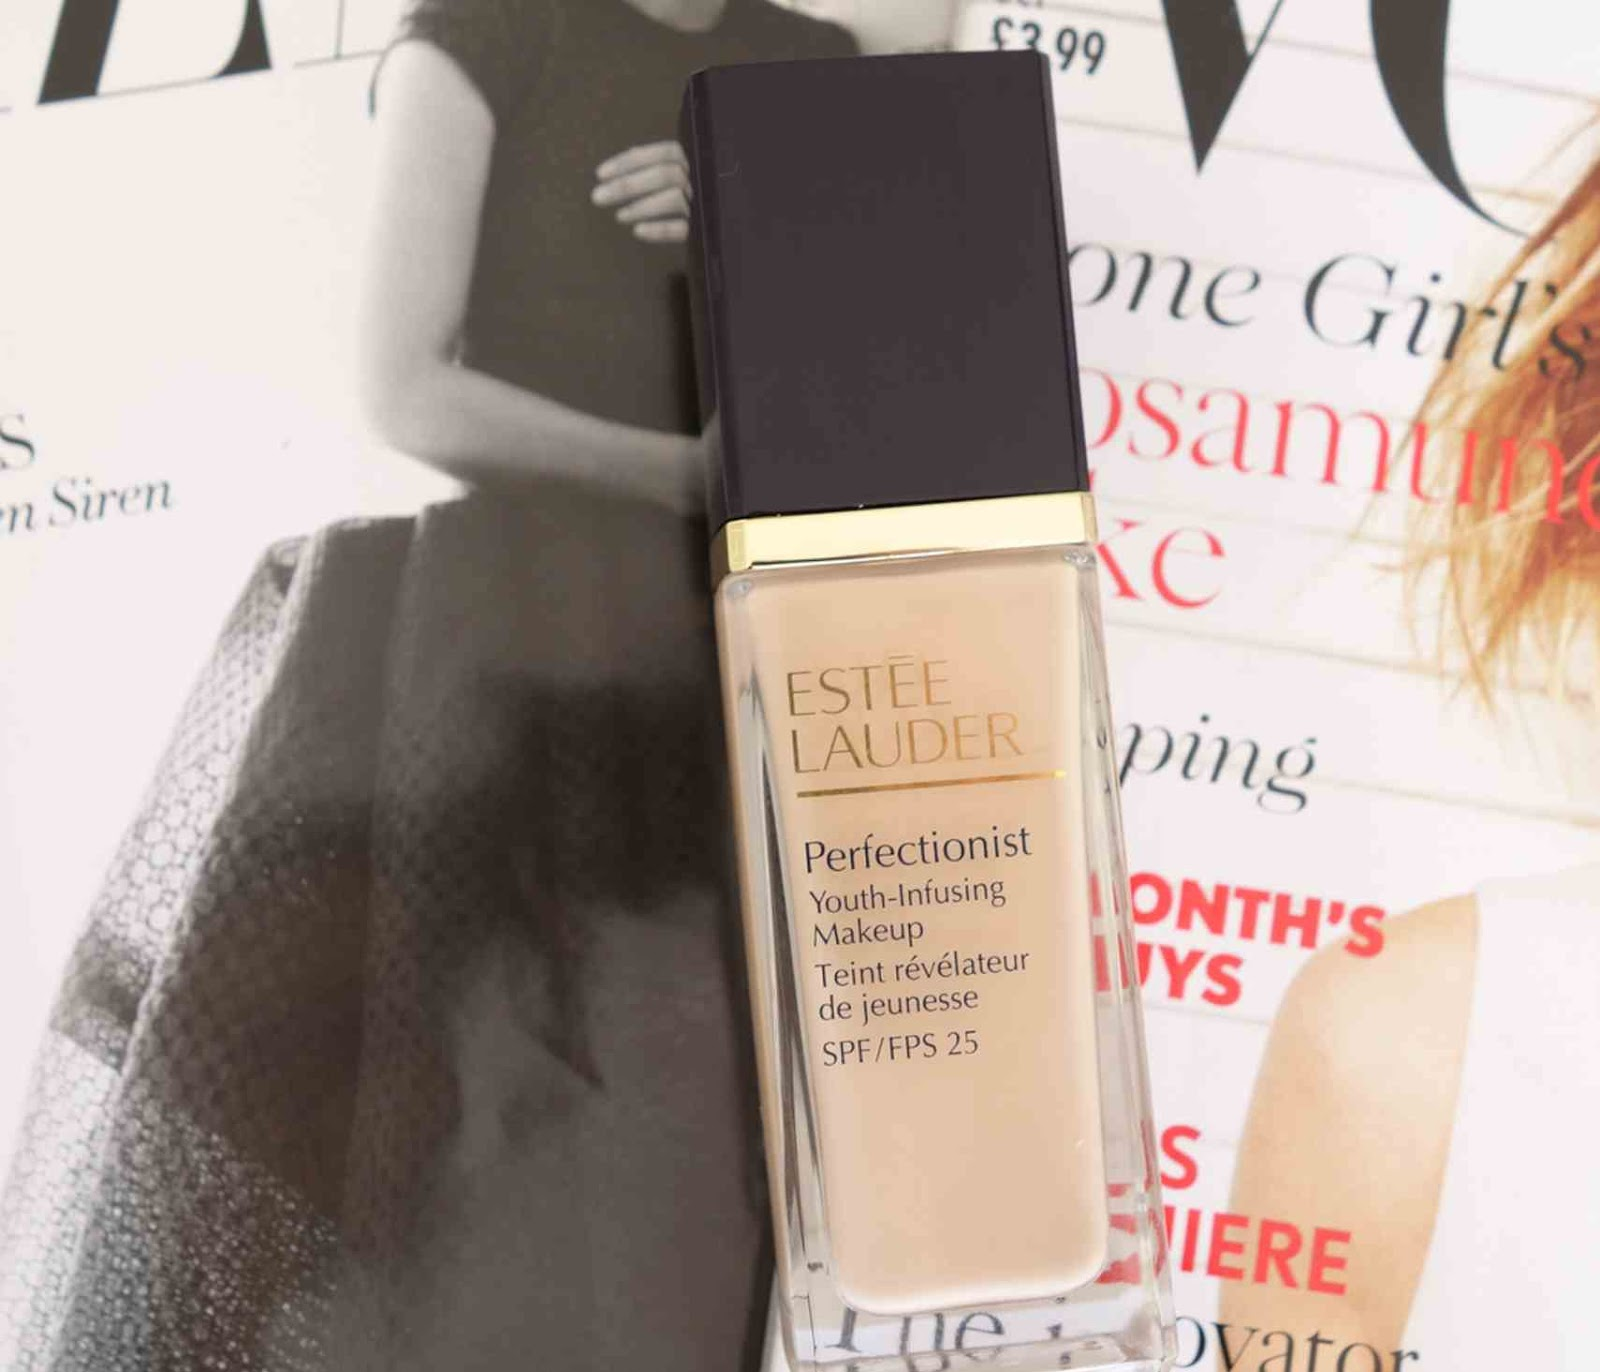 Estee-Lauder-Perfectionist-Youthj-Infusing-Make-Up-Review